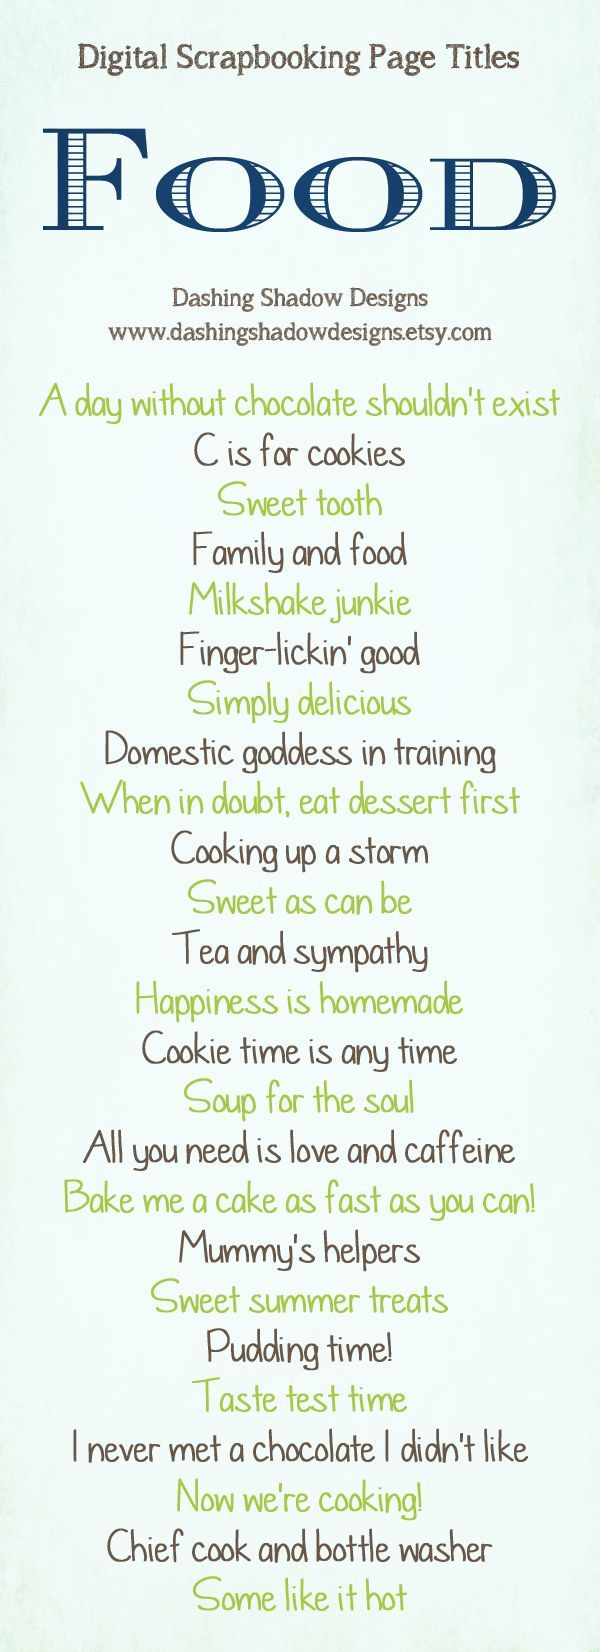 Food scrapbook layout titles Quotes and sayings for scrapbook page